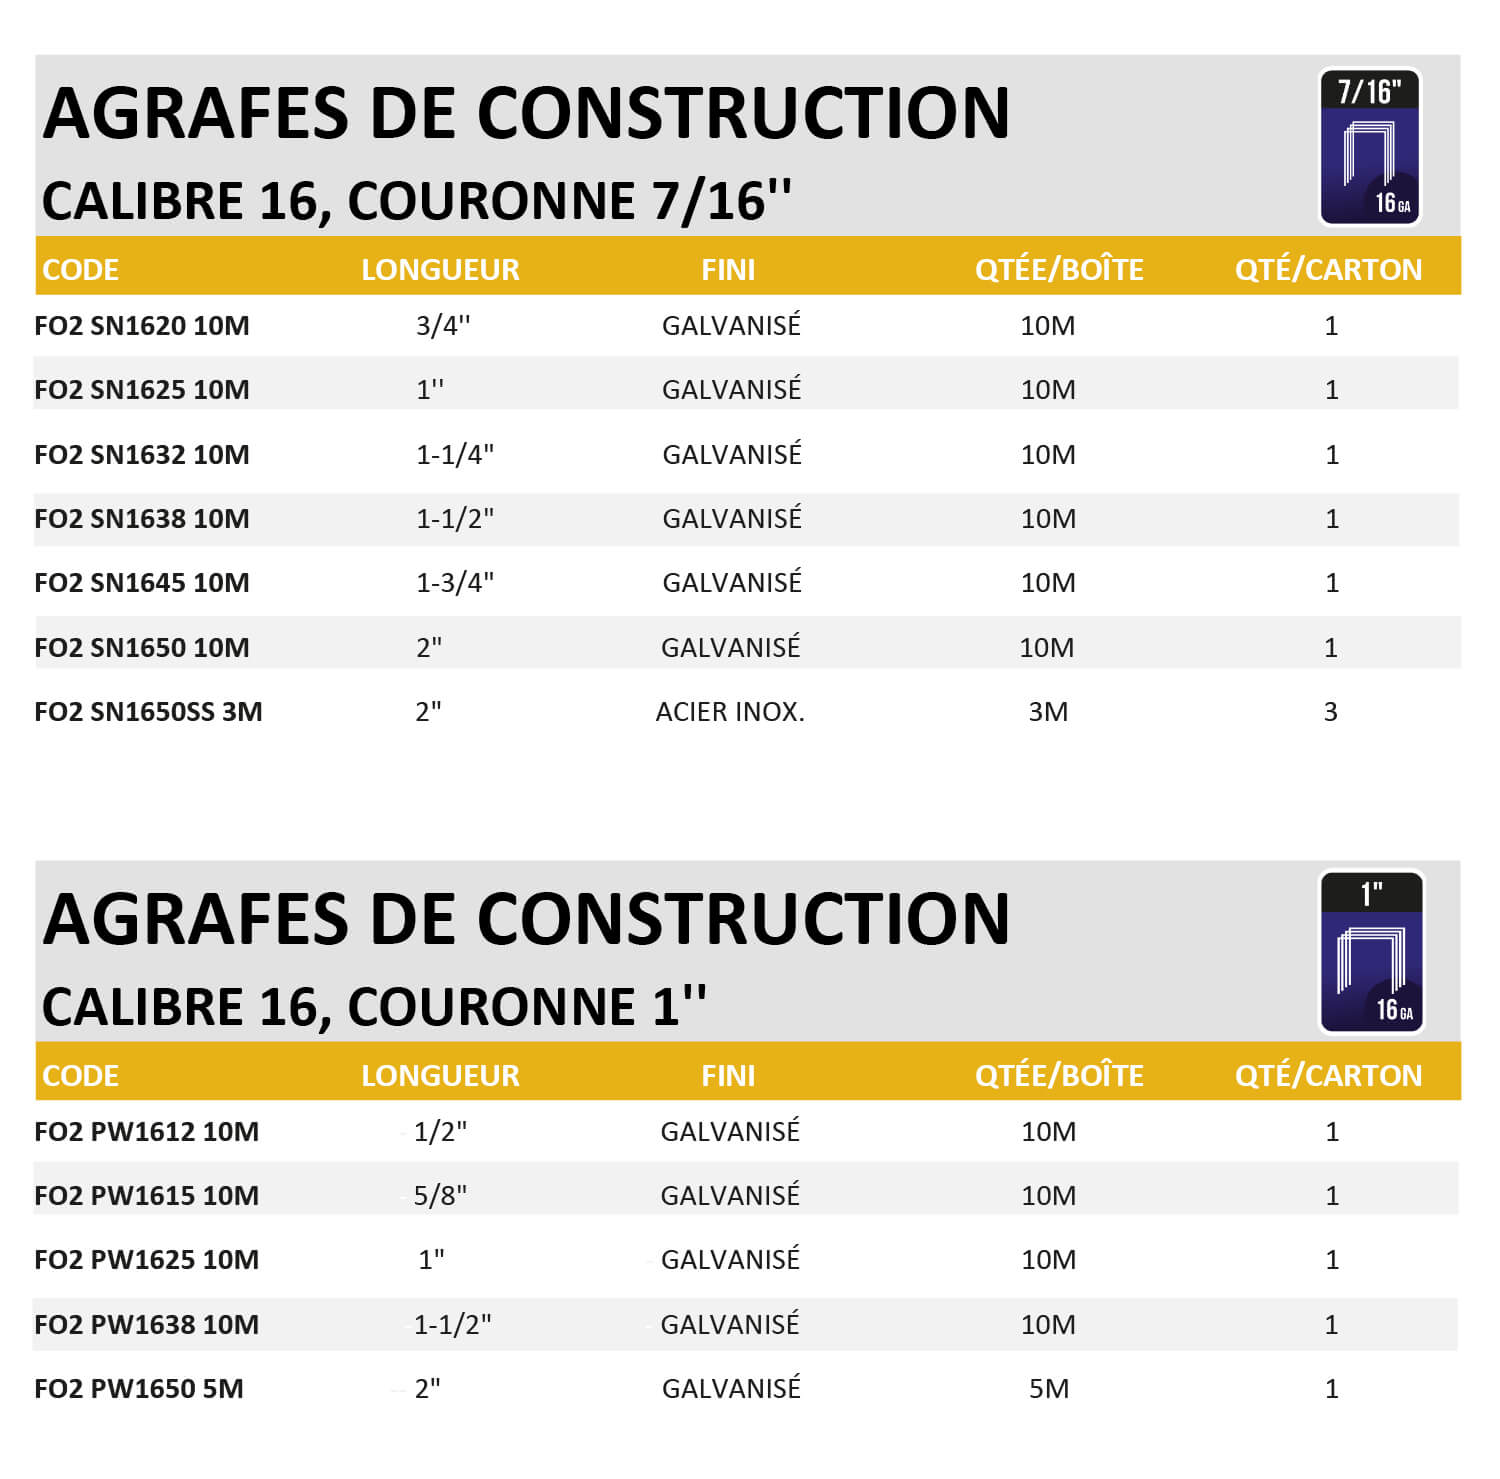 102-agrafes-a-construction-foresto-bf